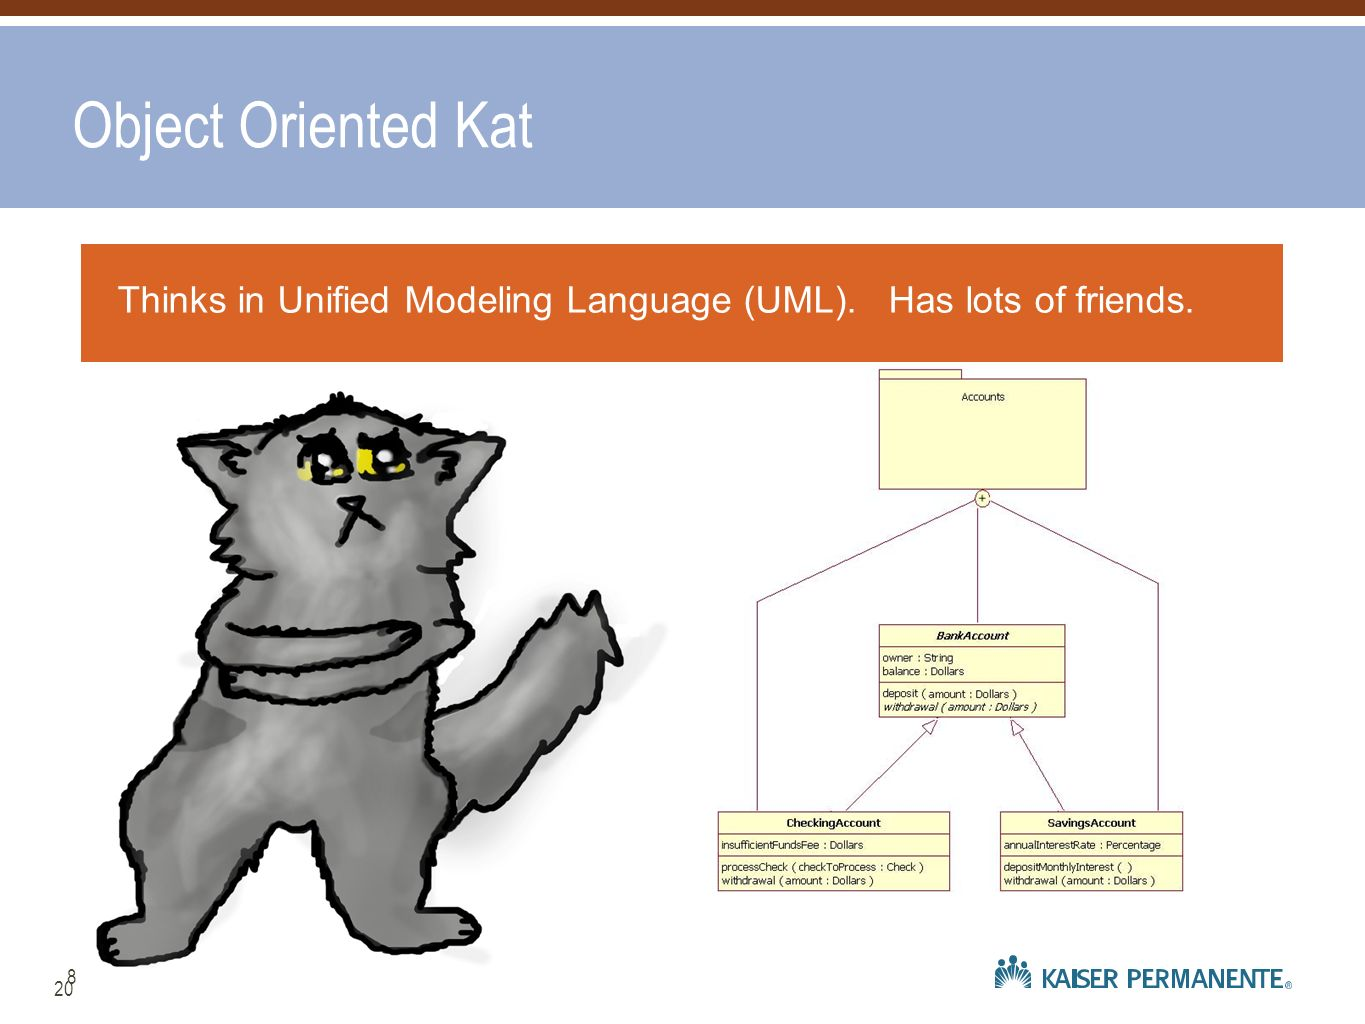 20 Thinks in Unified Modeling Language (UML). Has lots of friends. Object Oriented Kat 8